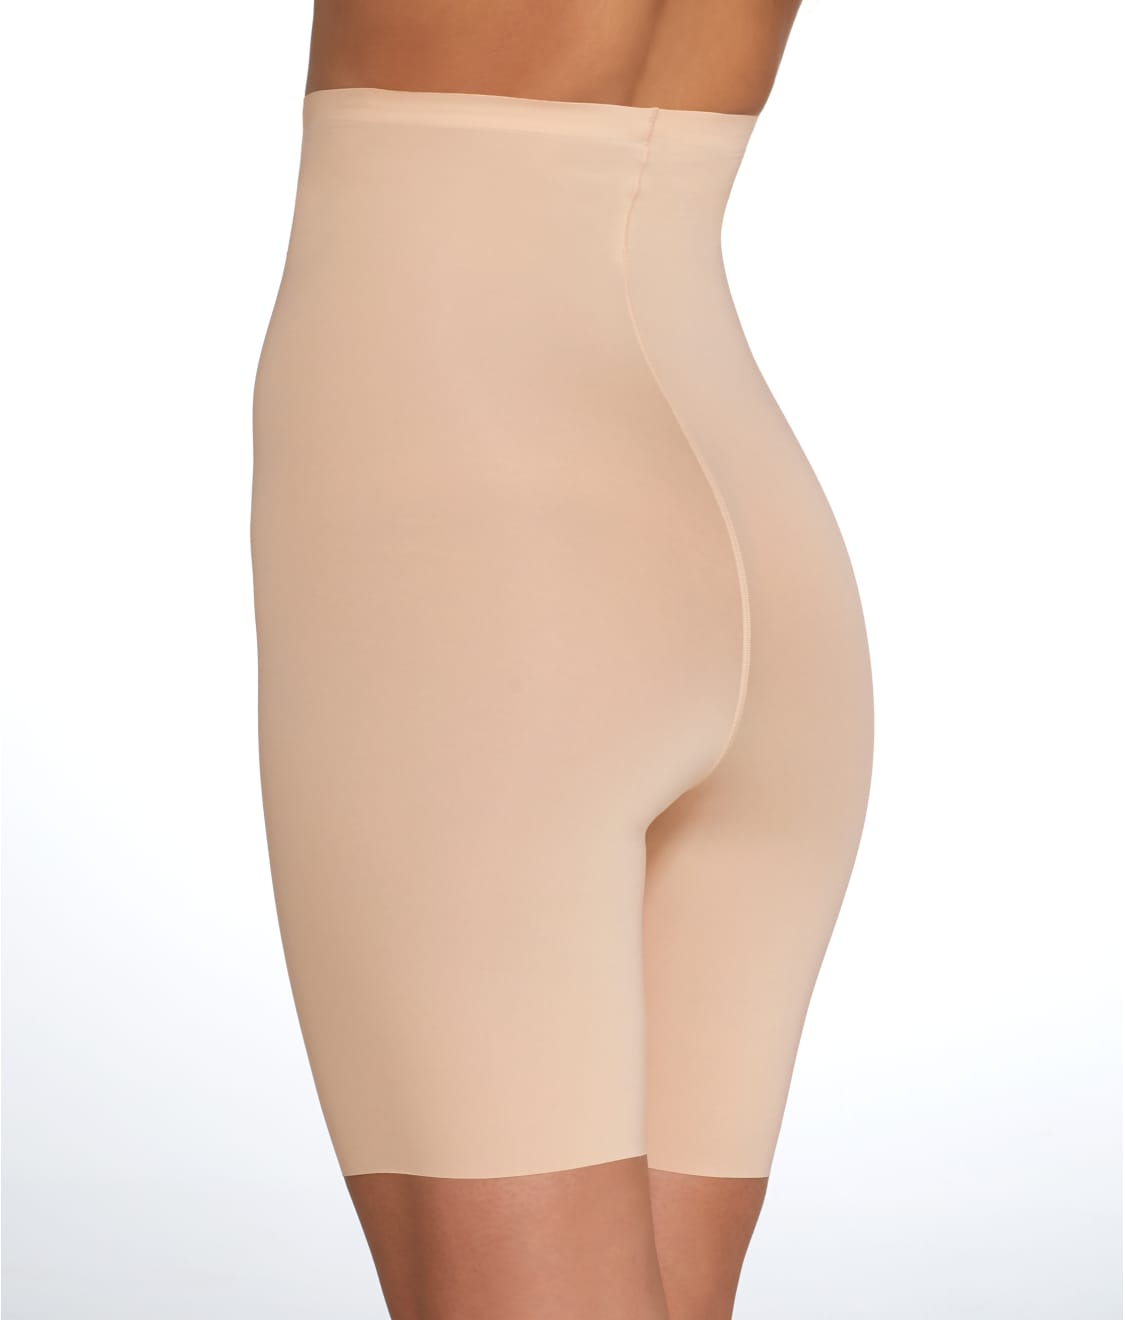 bfb8341afa6 SPANX Trust Your Thinstincts High-Waist Shorts